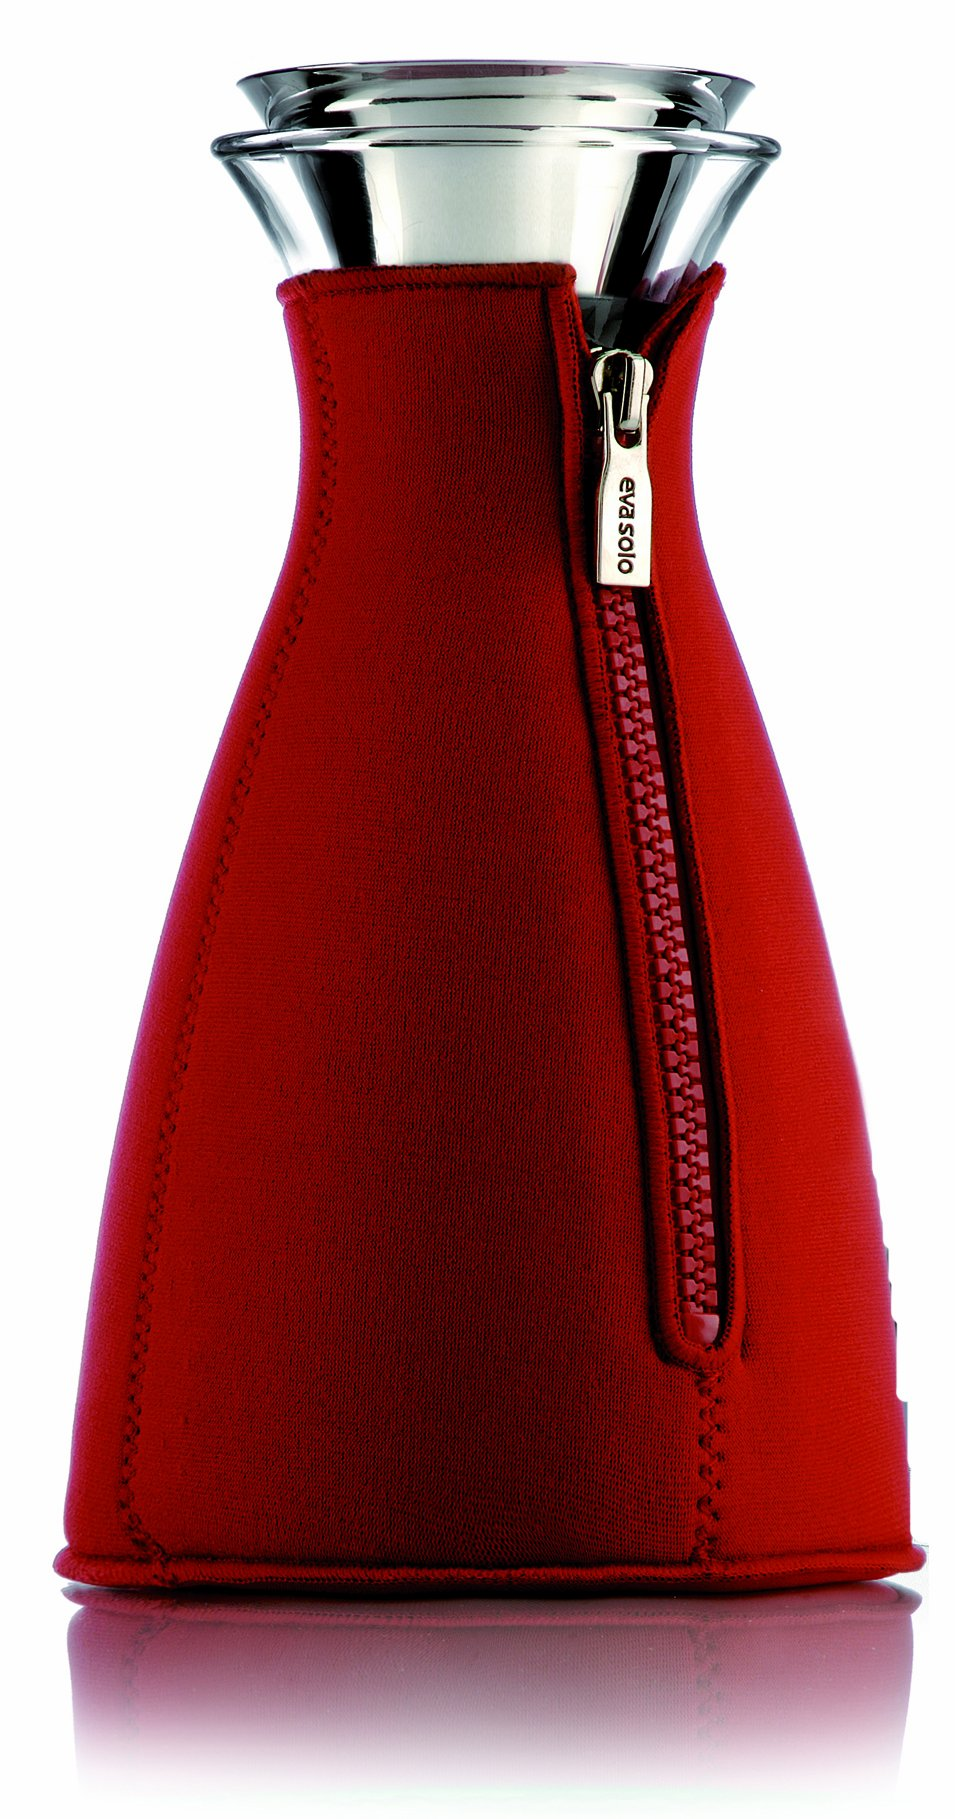 Eva Solo Cafe Solo Coffee Maker with Neoprene Cover, 1 Liter, Red